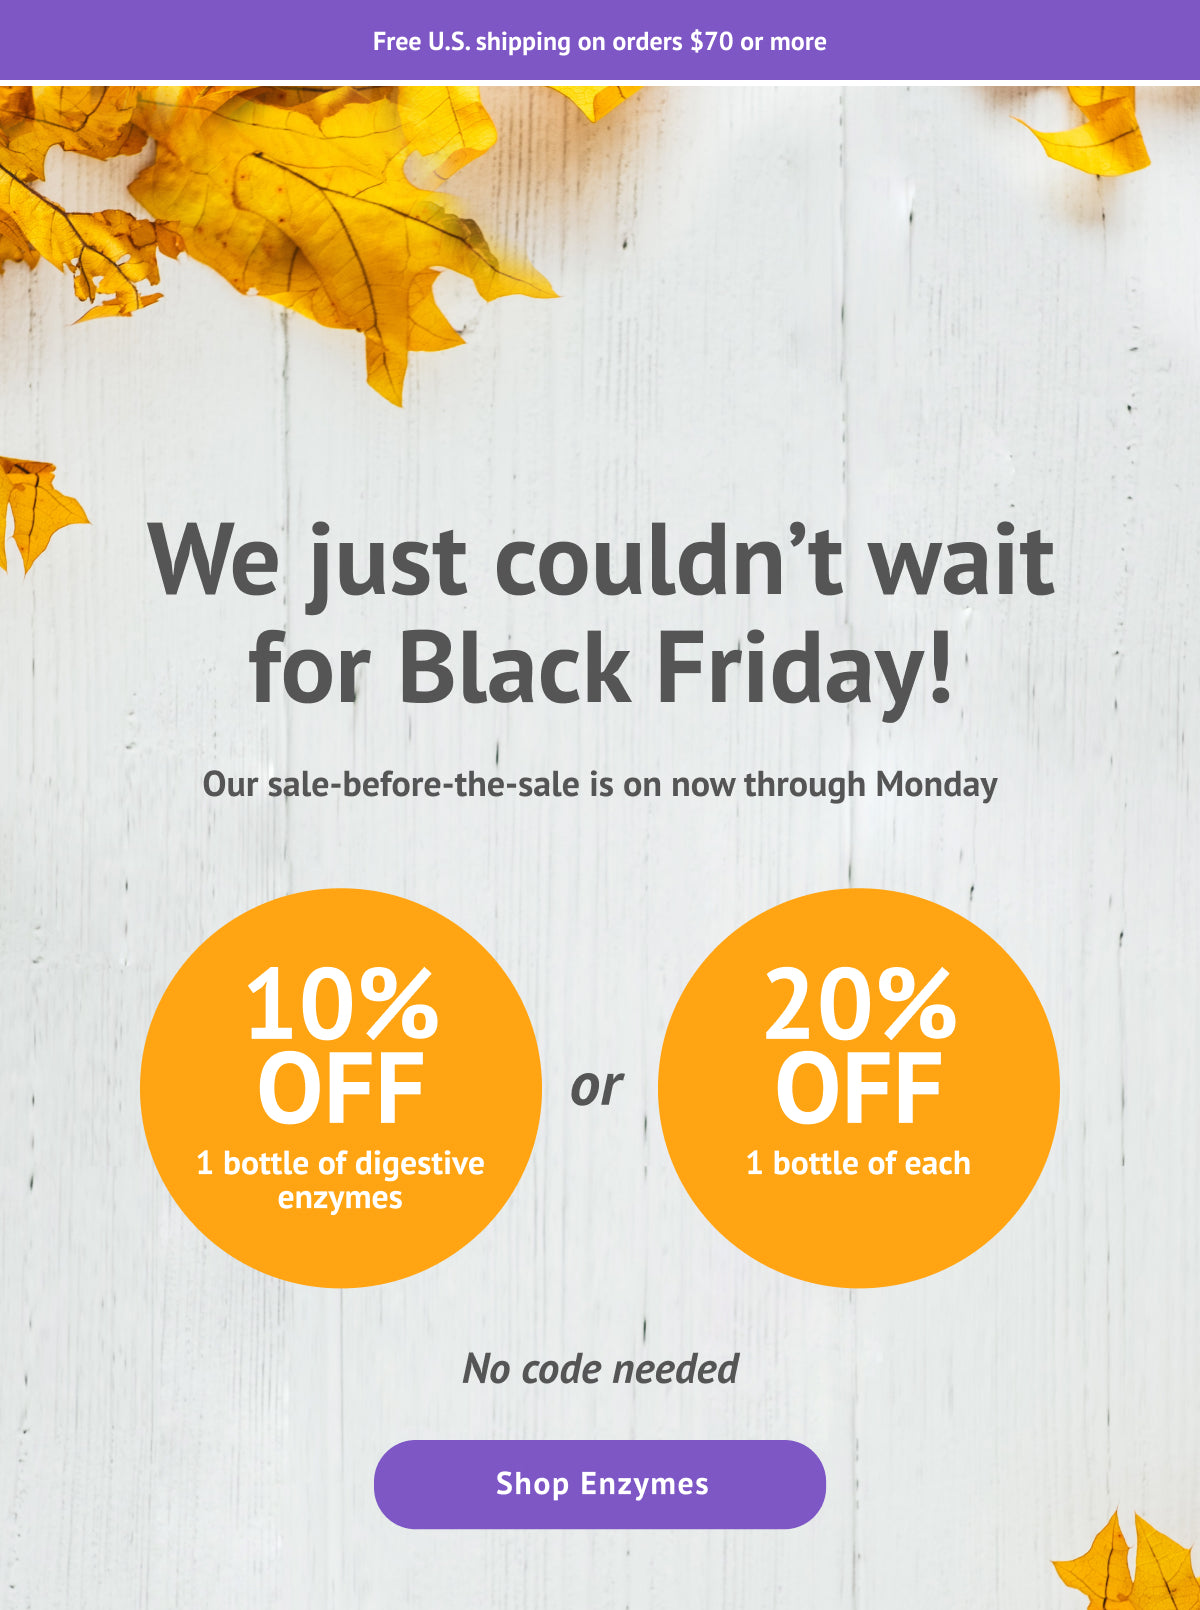 Example of an email banner, telling customers they couldn't wait until Black Friday so they're sharing deals now